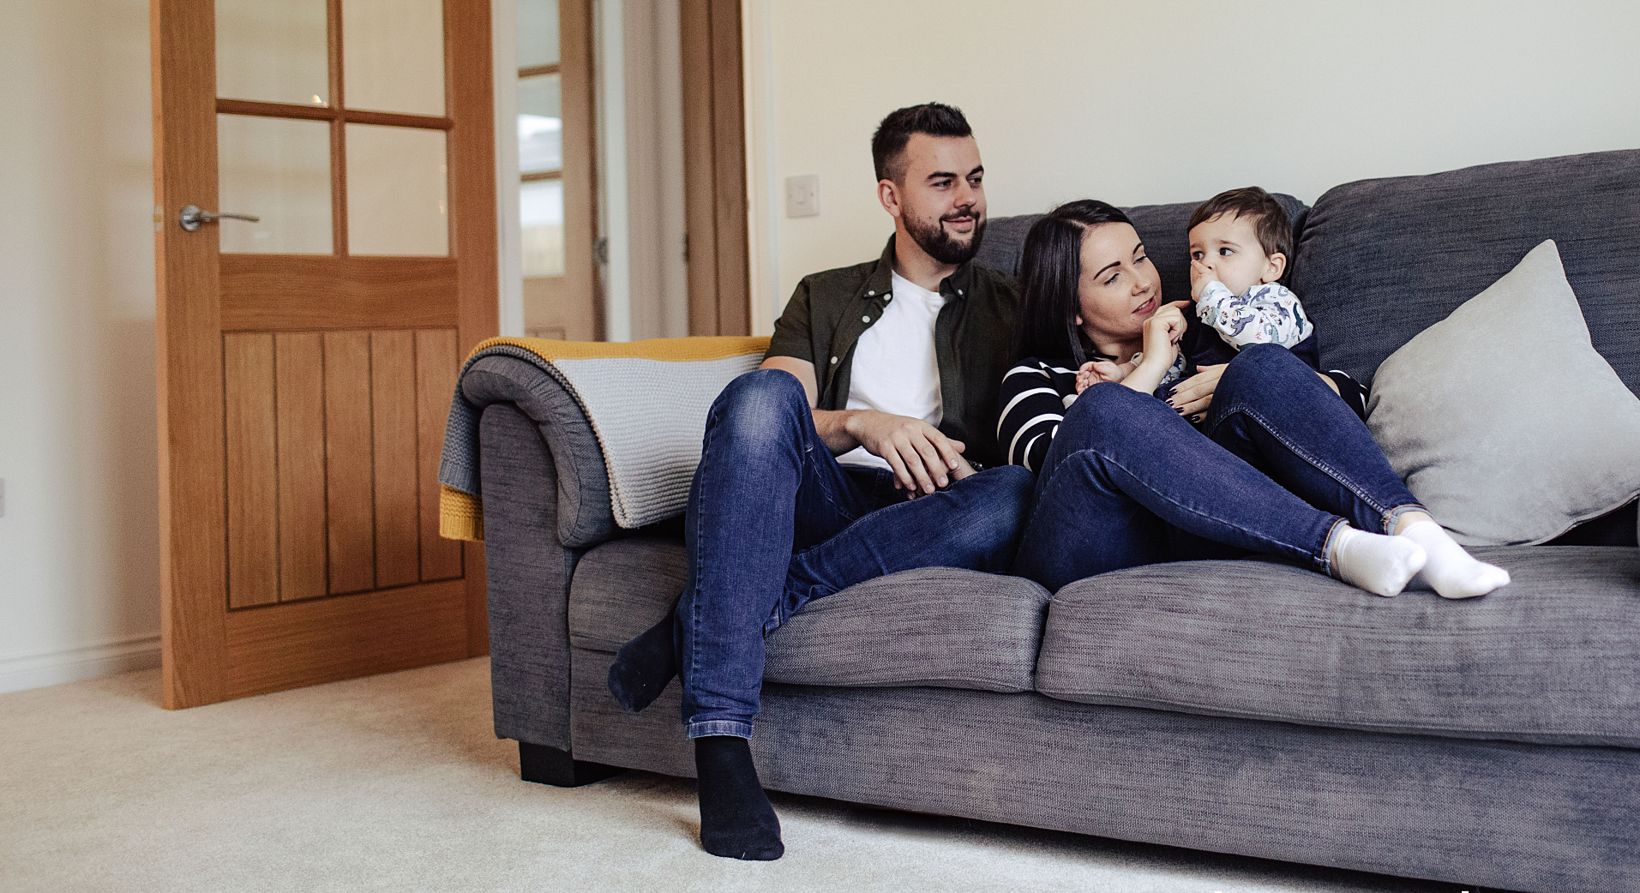 Advice from 3 customers who bought new homes during the pandemic